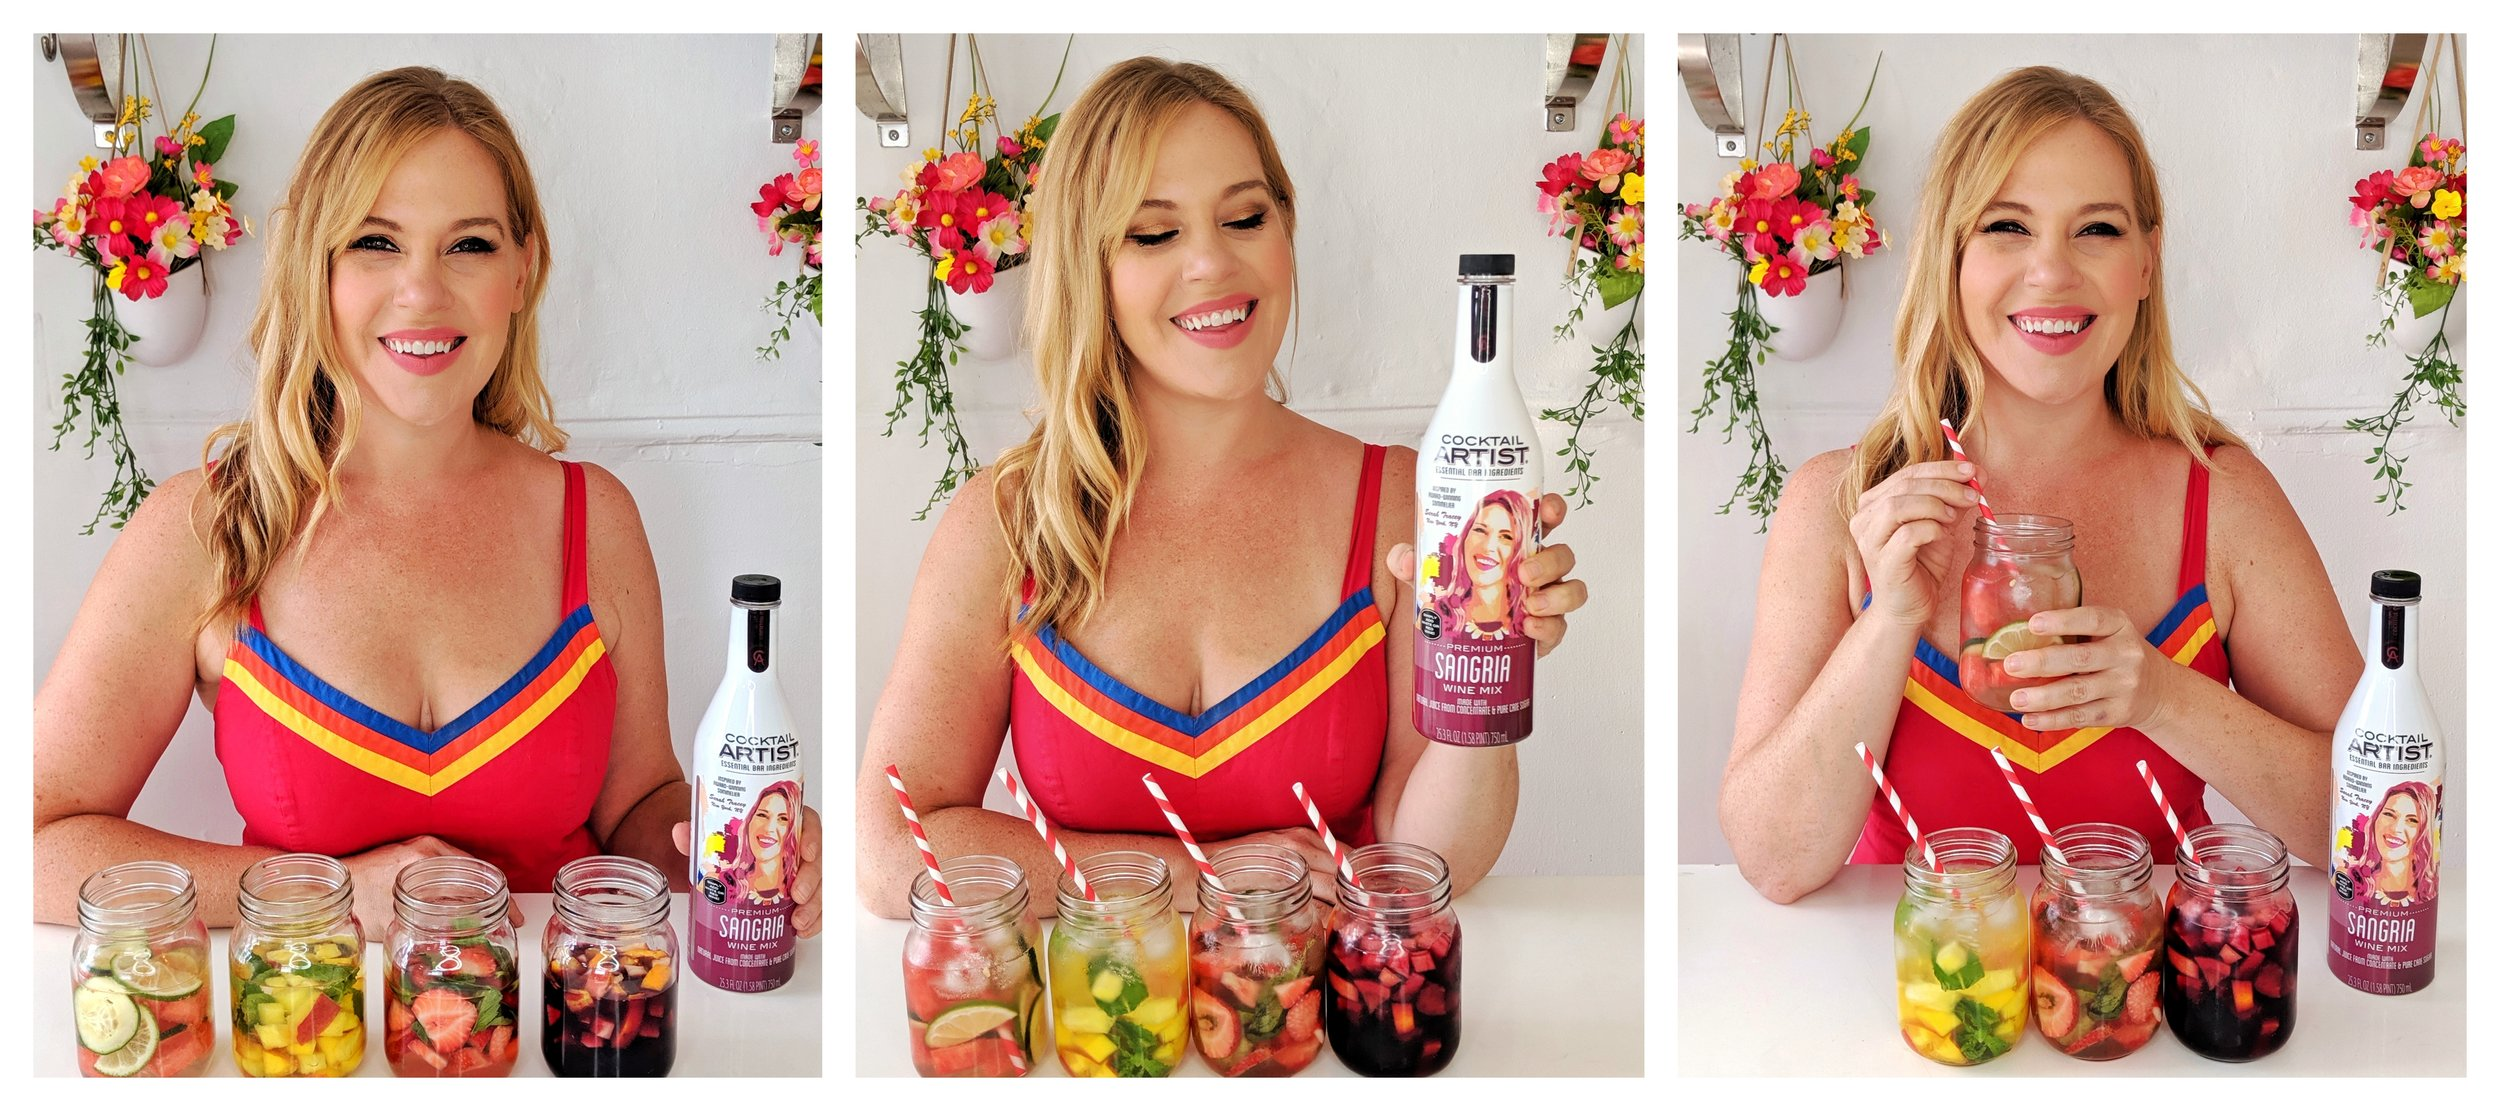 Sommelier Sarah Tracey creates sangria recipes 4 ways with Cocktail Artist Premium Sangria Wine Mix